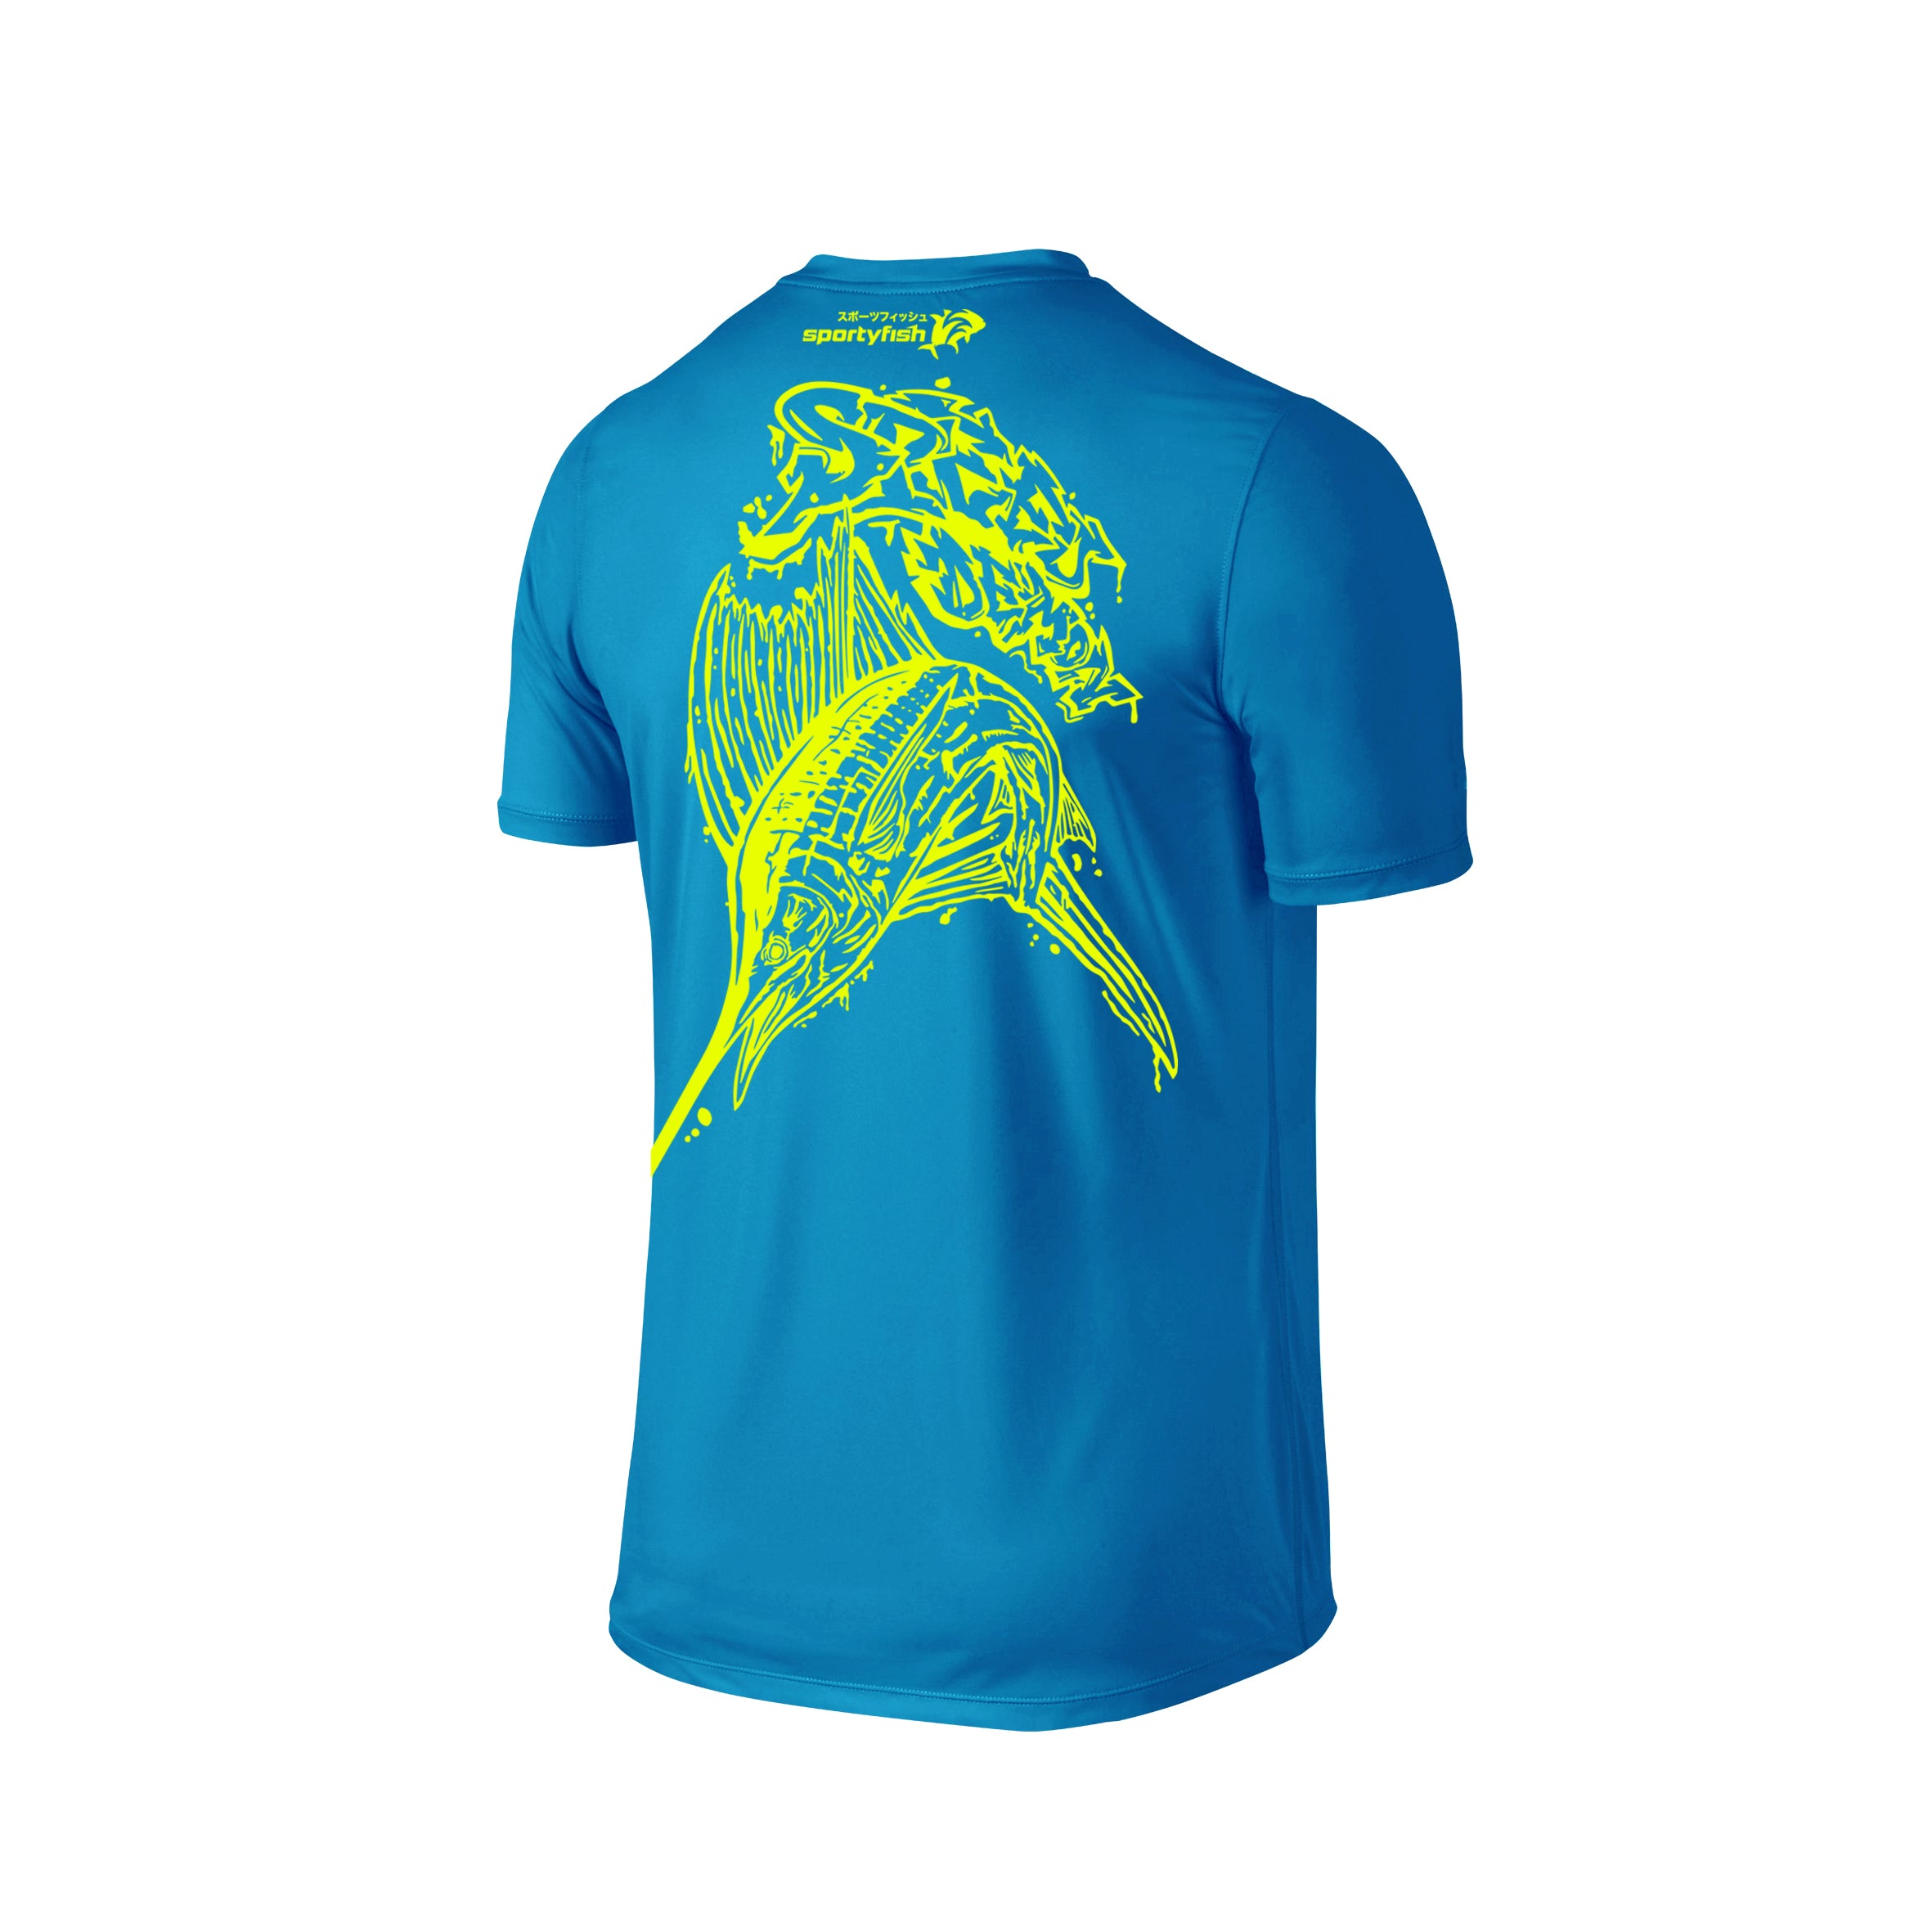 Wildstyle Graffiti Series Turquoise T-shirt(back view)Neon Yellow: Atlantic Sailfish